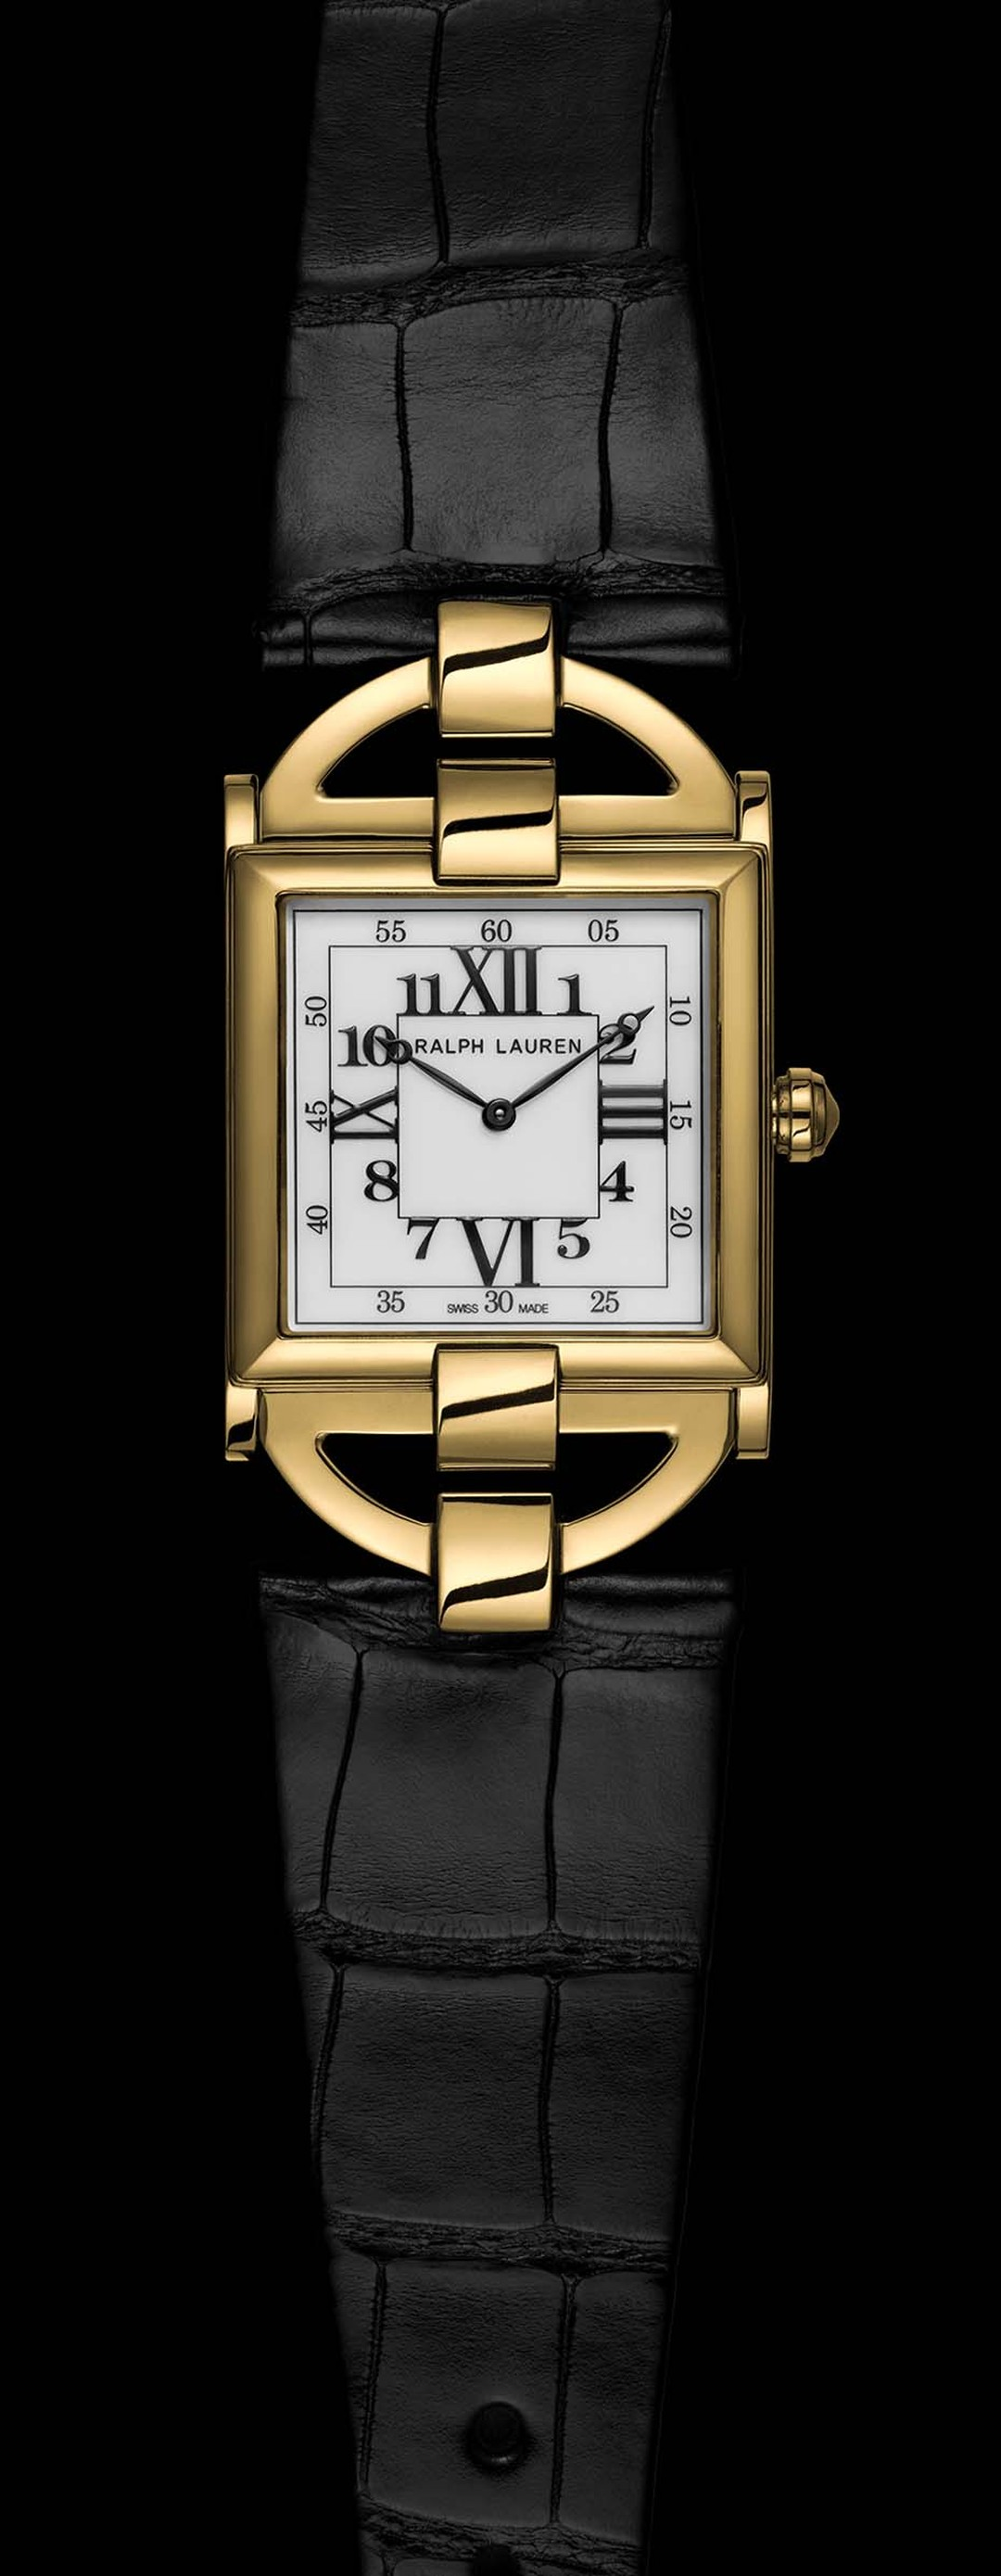 The spirit of Art Deco comes to life in the streamlined contours of the 867 Connoisseur watch and resonates in the beautiful square gold case with its stepped flanks and gently arched profile.